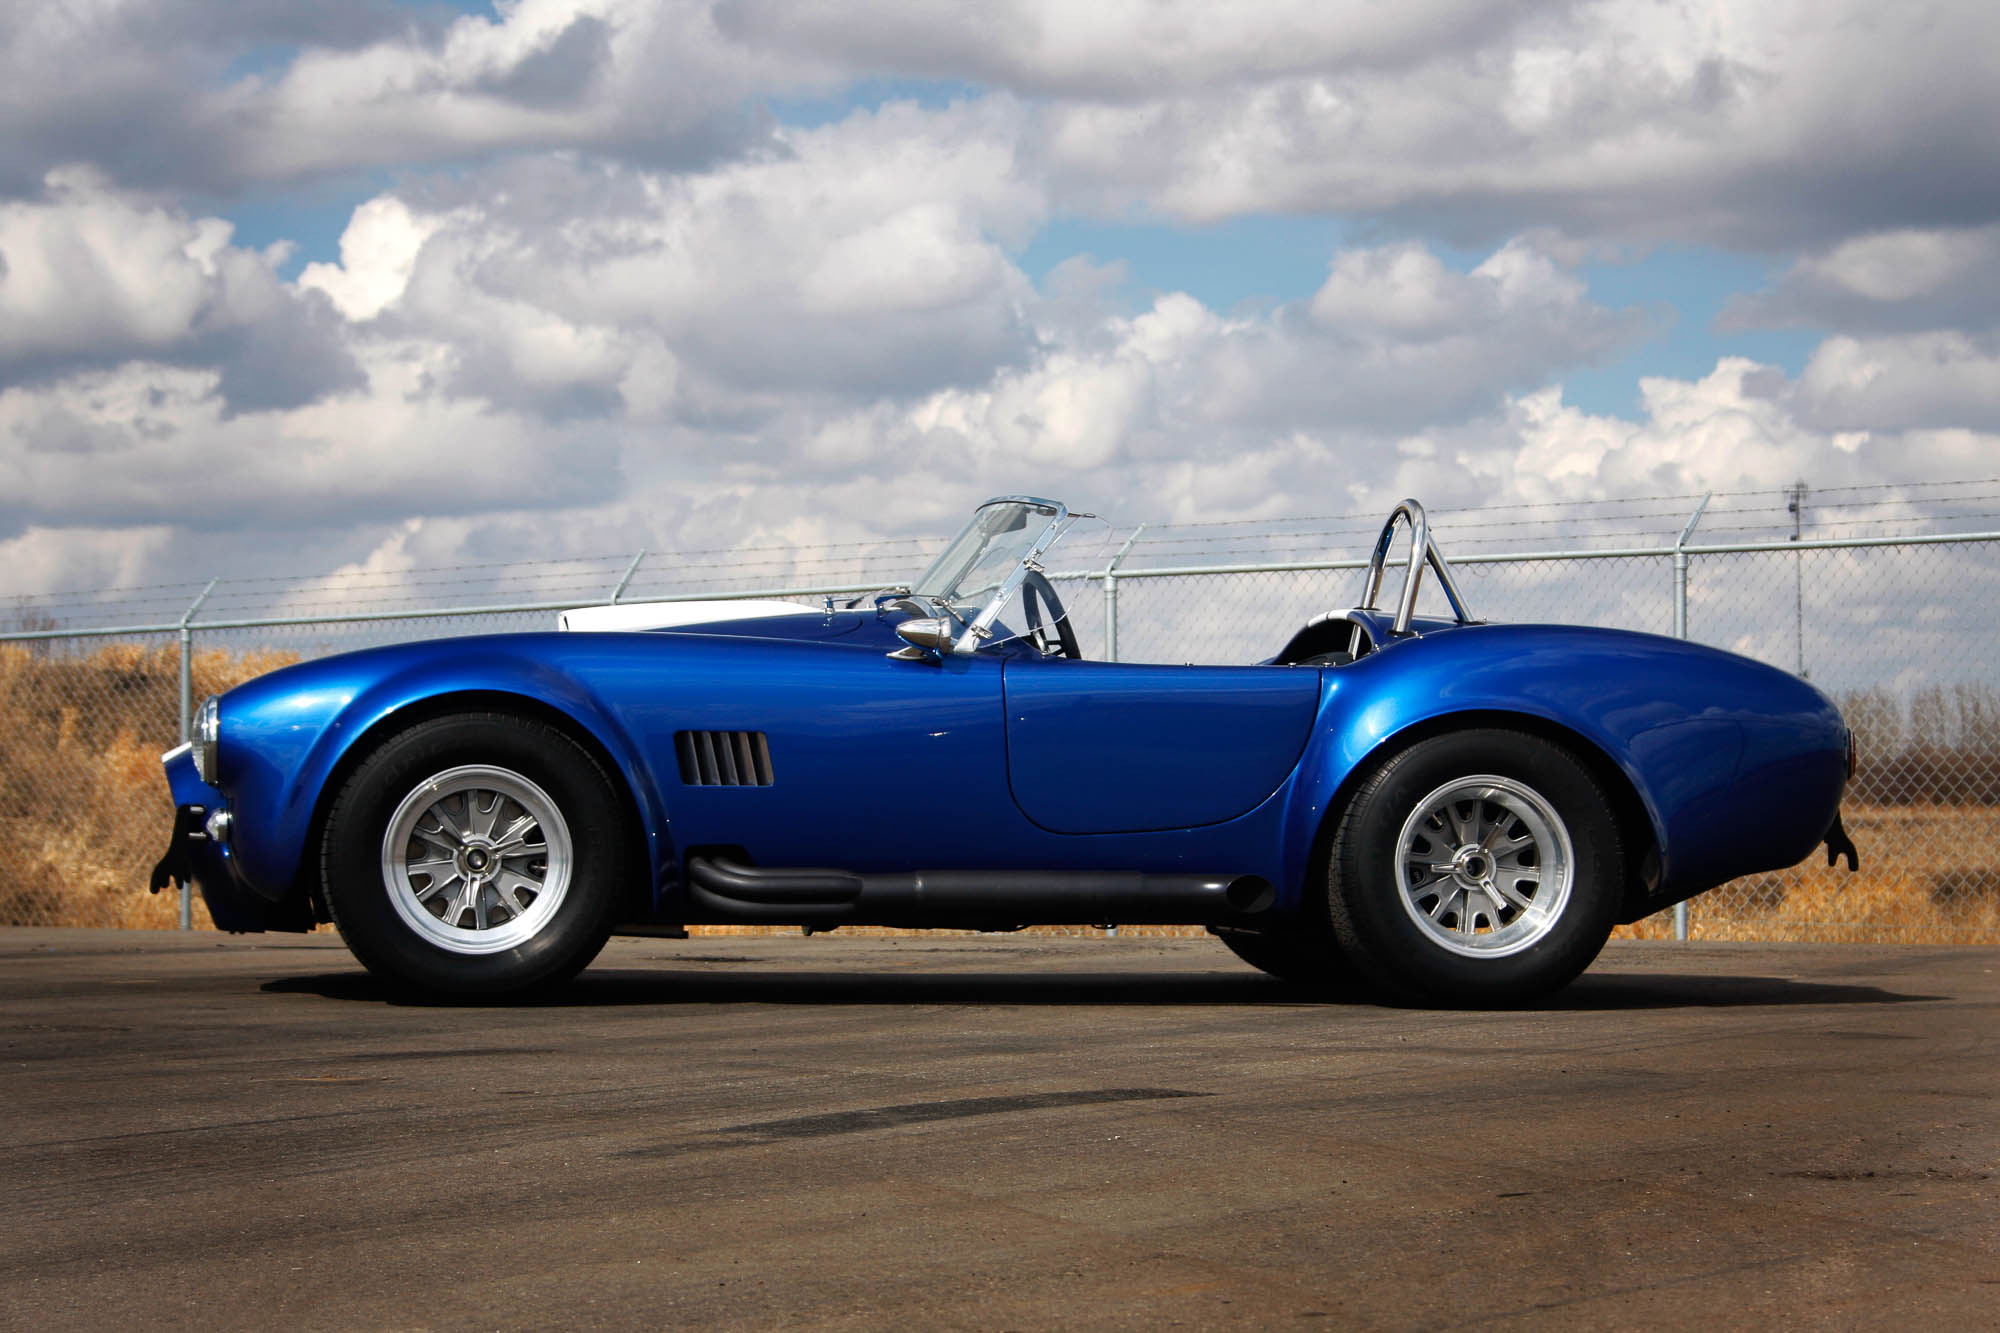 1965 Ac Cobra The Iron Garage Make Your Own Beautiful  HD Wallpapers, Images Over 1000+ [ralydesign.ml]